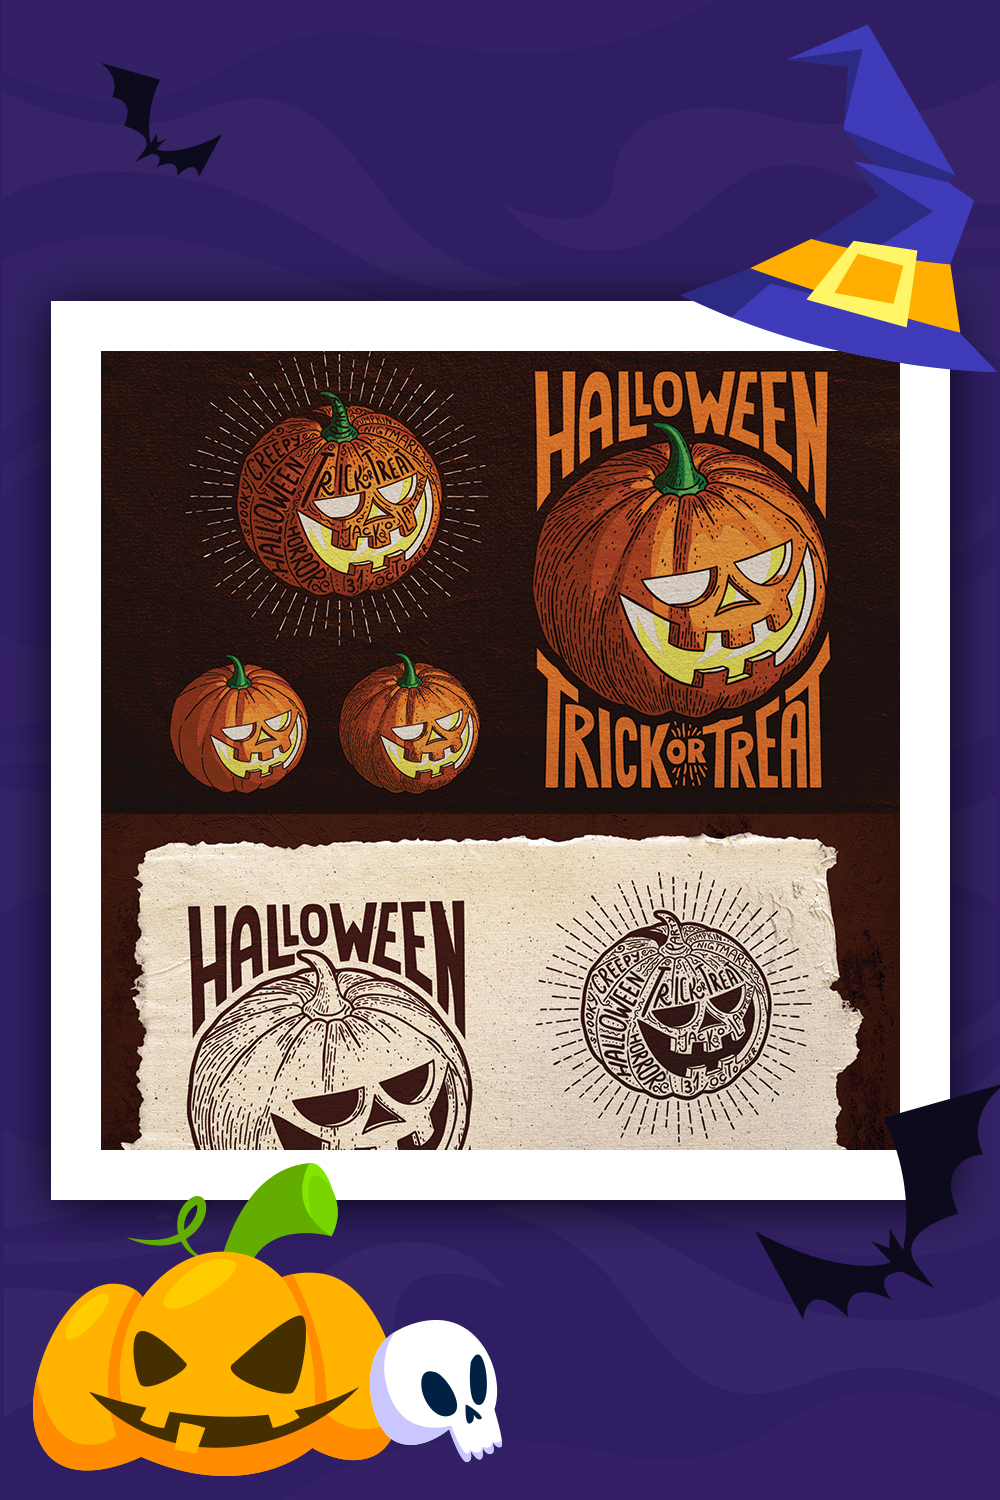 Halloween Pumpkin Engraving Style Illustration